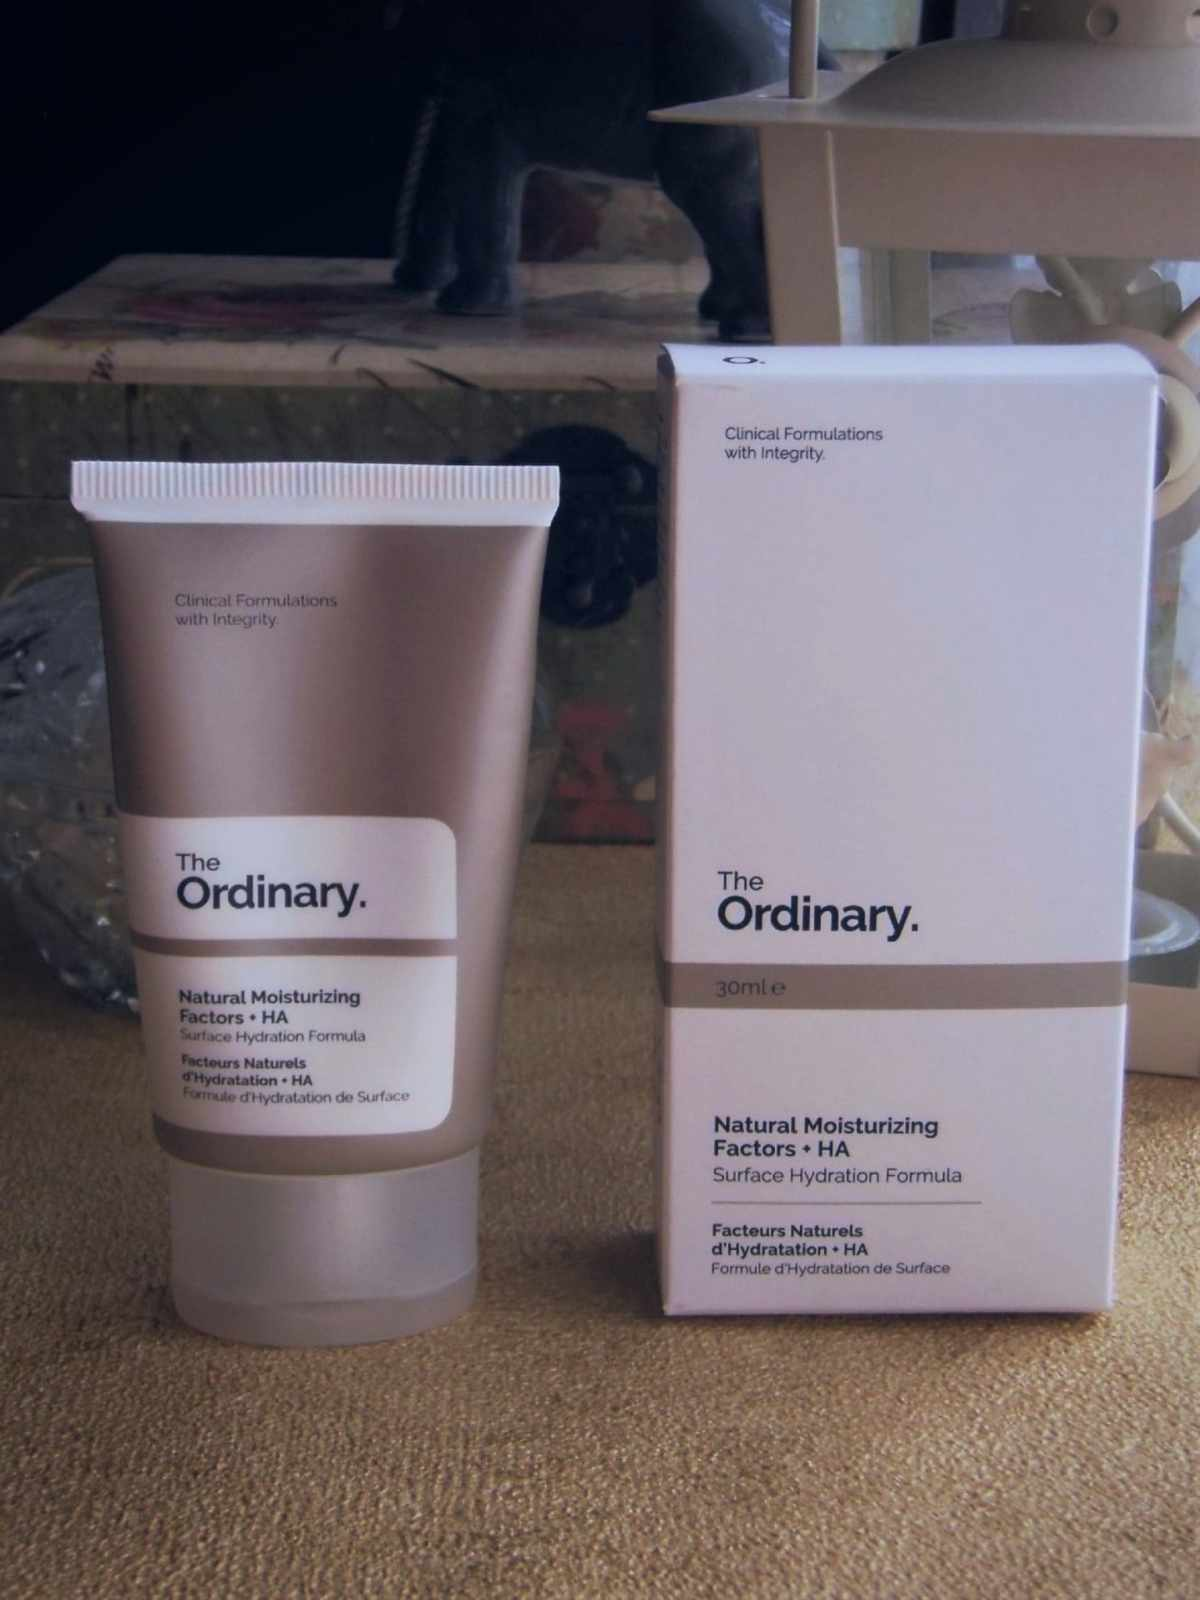 Natural Moisturizing Factors + HA by the ordinary #11